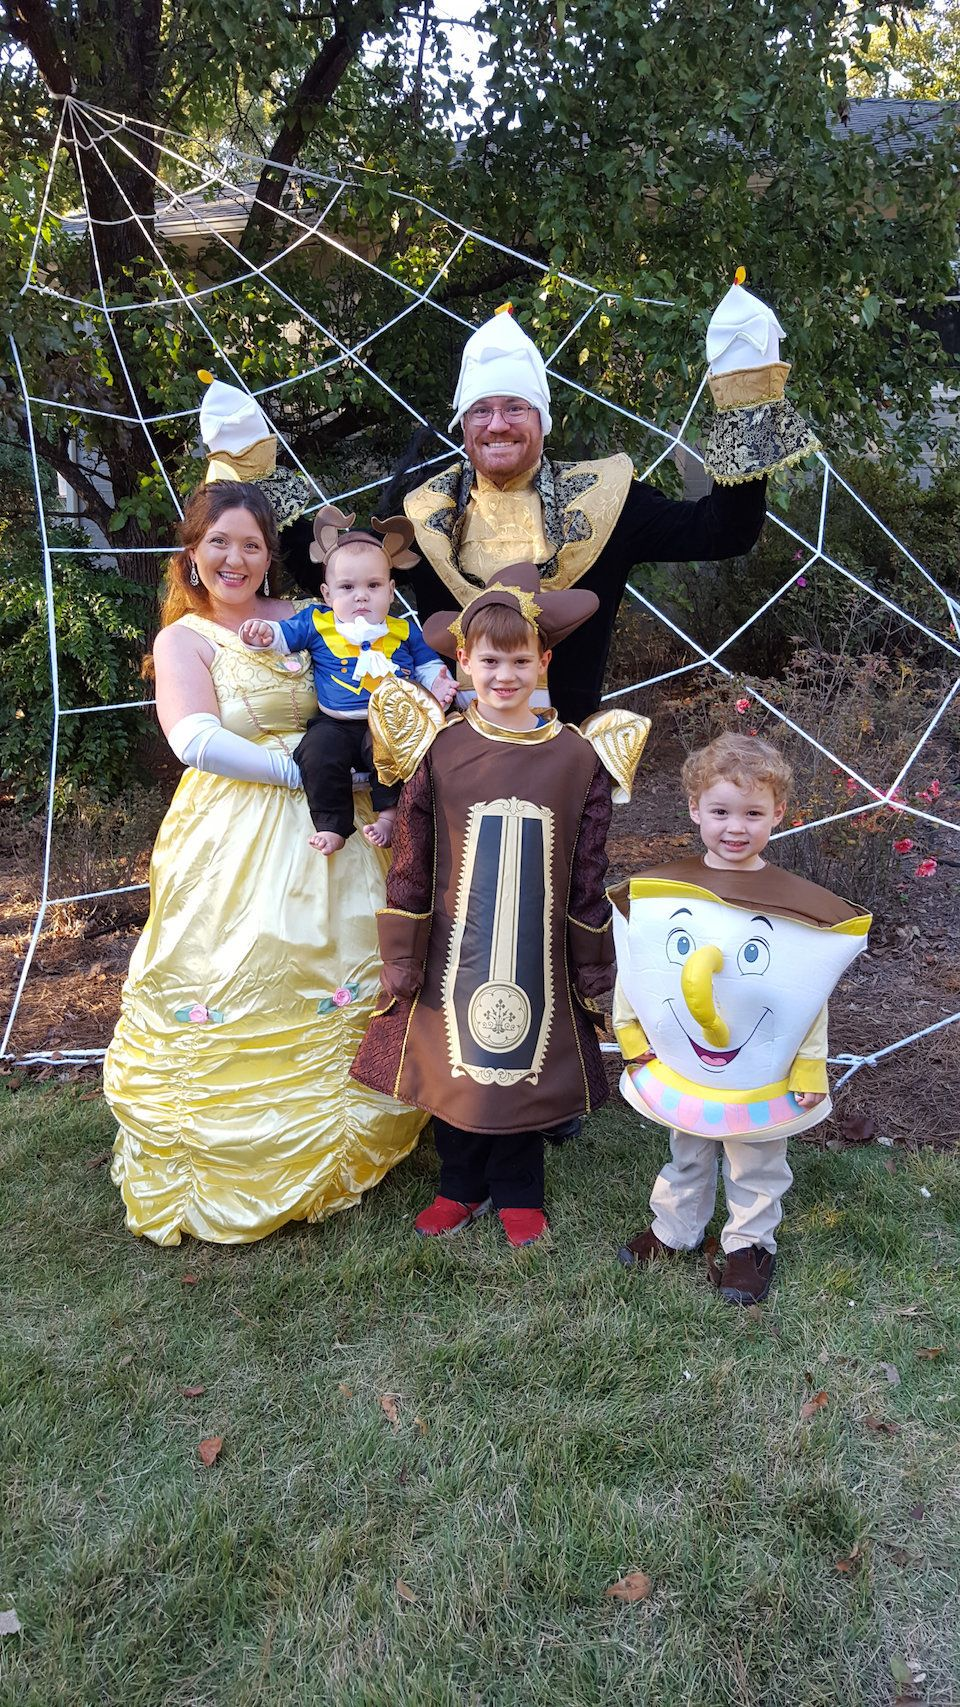 Cute Best Friend Halloween Costumes Funny.59 Family Halloween Costumes That Are Clever Cool And Extra